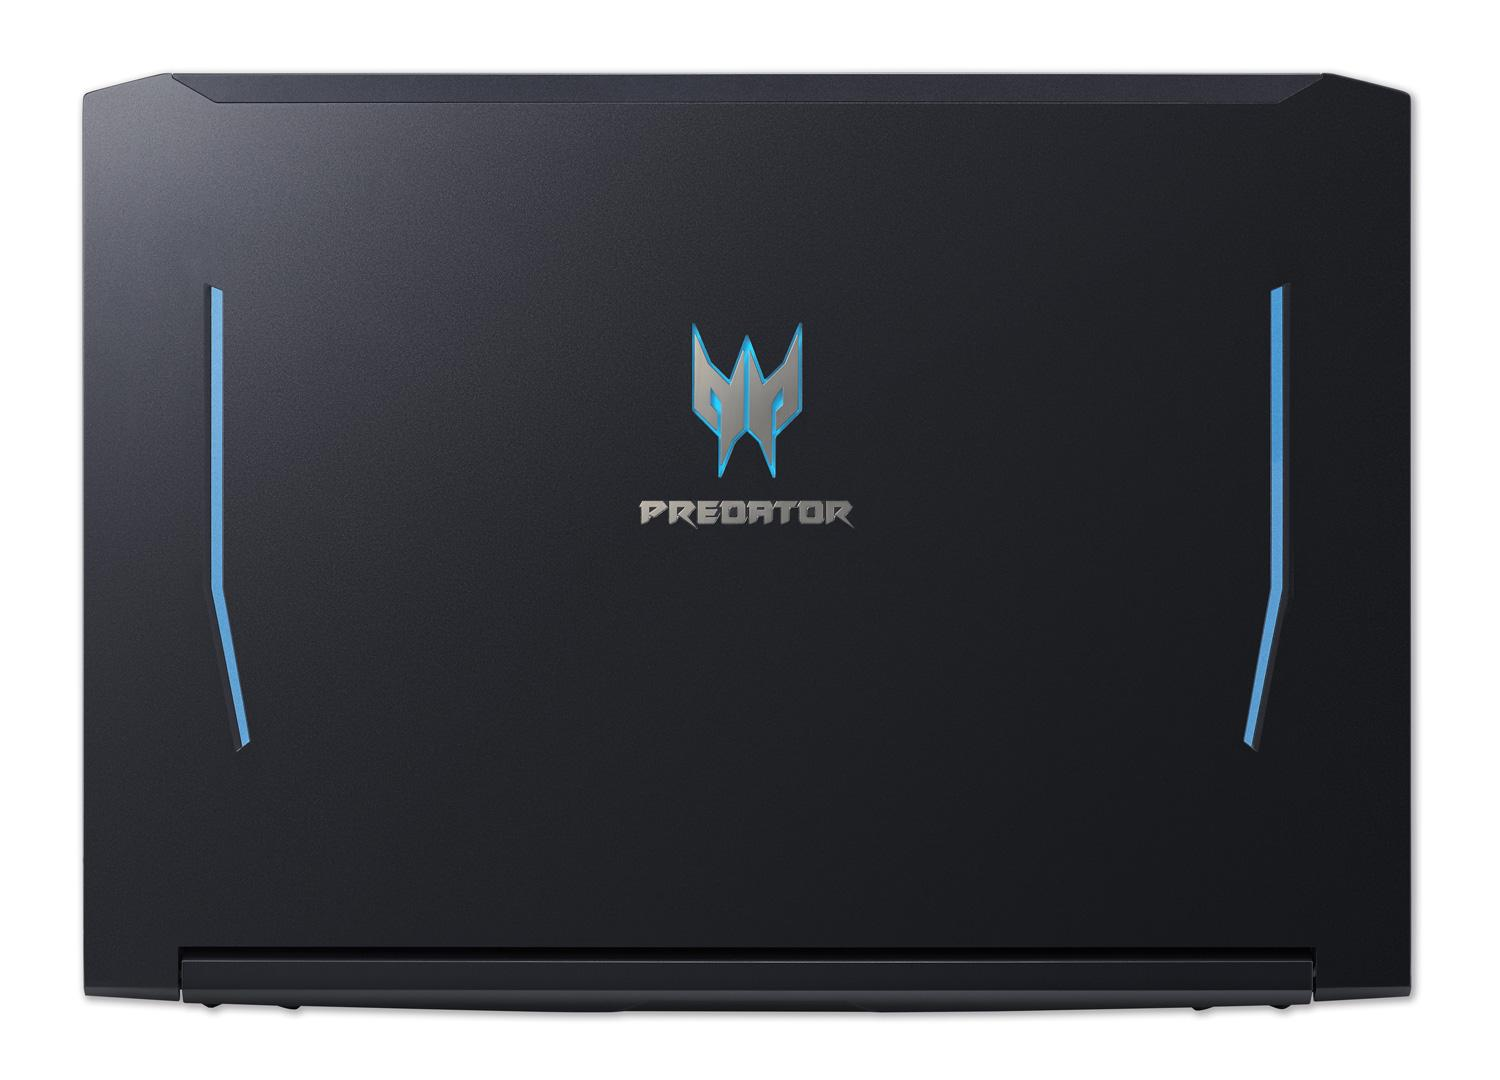 Ordinateur portable Acer Predator Helios PH315-52-754M (NH.Q53EF.018) - GTX 1660 Ti, 144Hz - photo 4